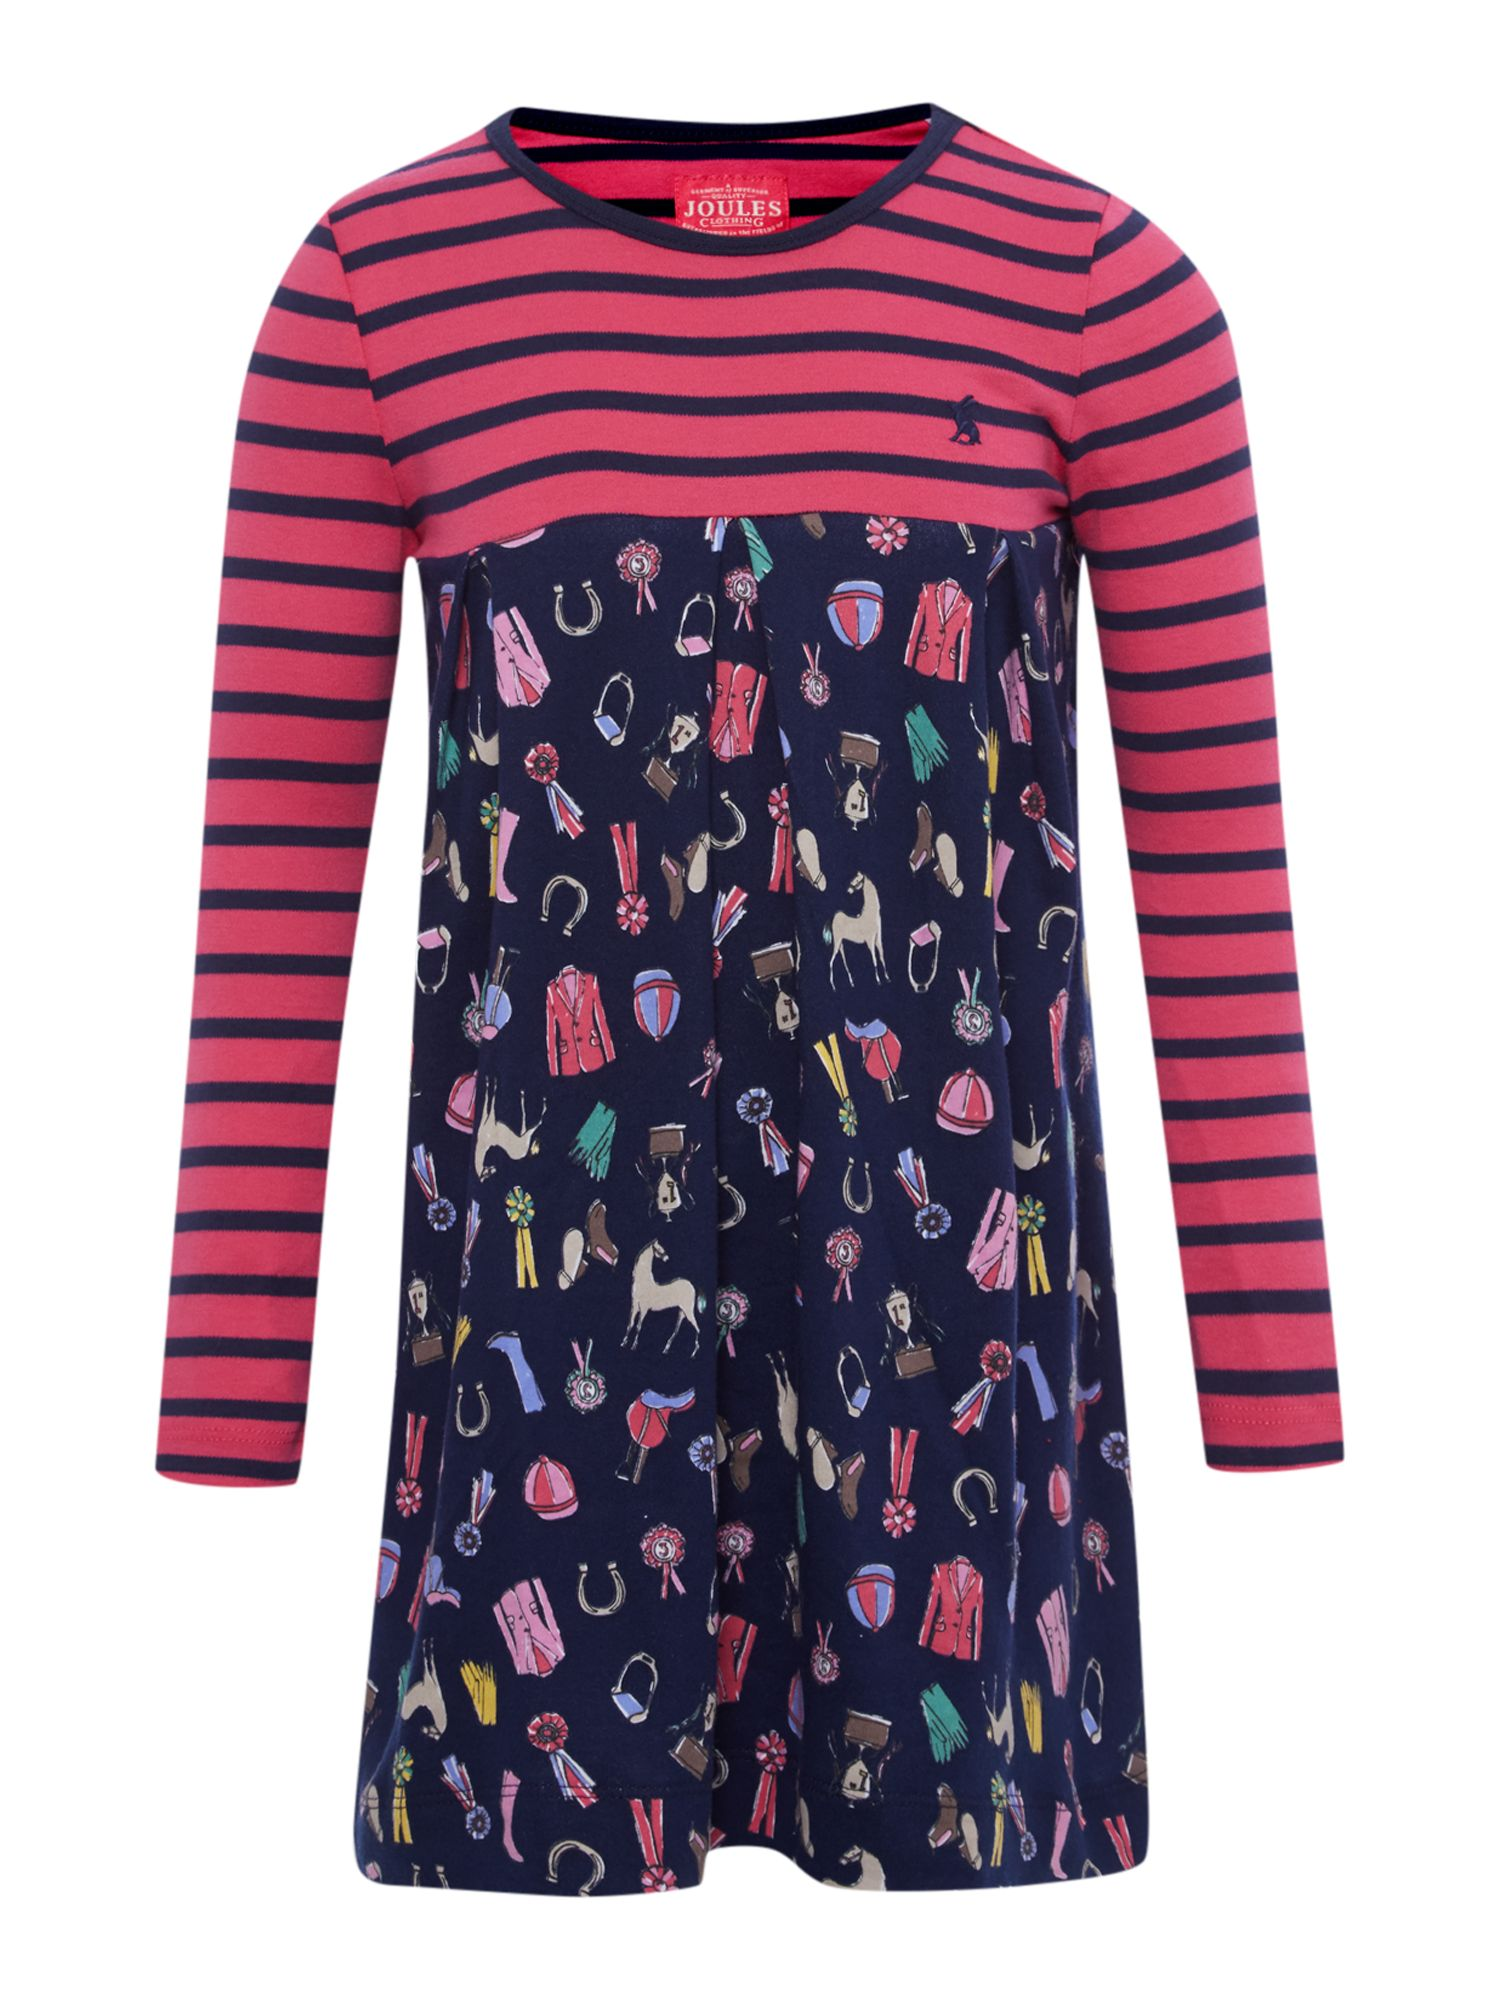 Girls horse print dress with striped top